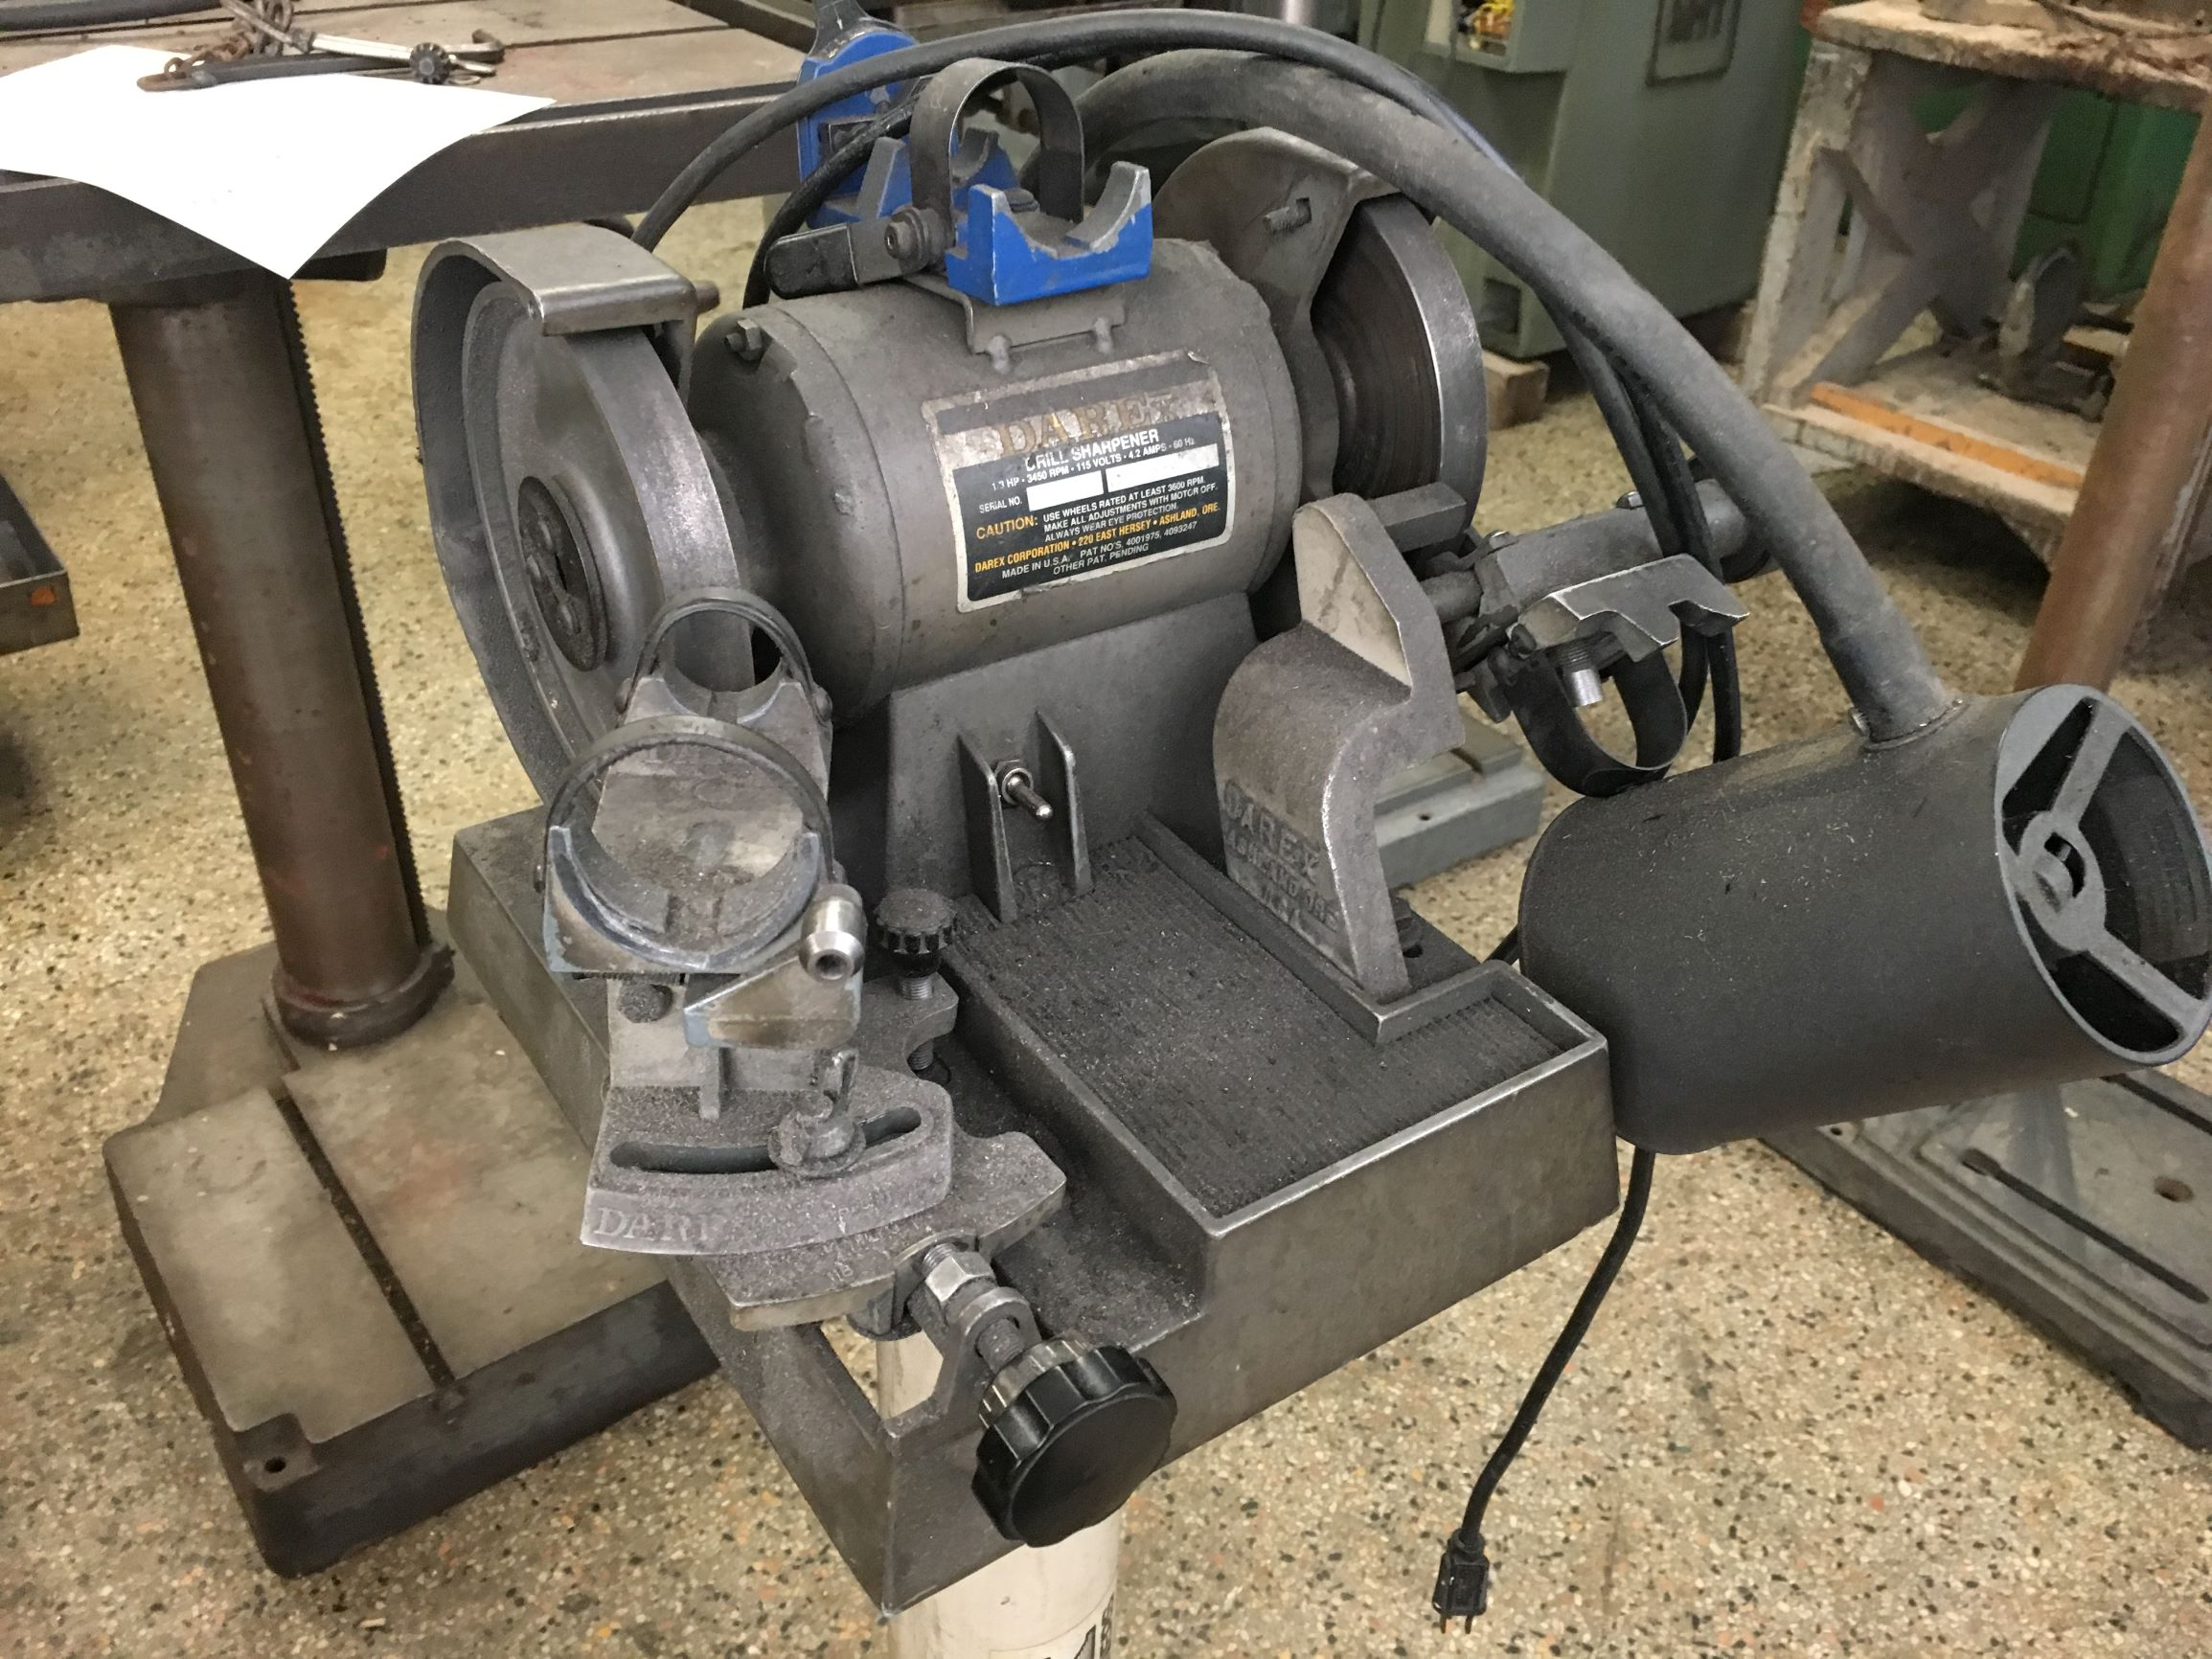 Darex 1/3 HP Drill Sharpener, S/N 534399CR.